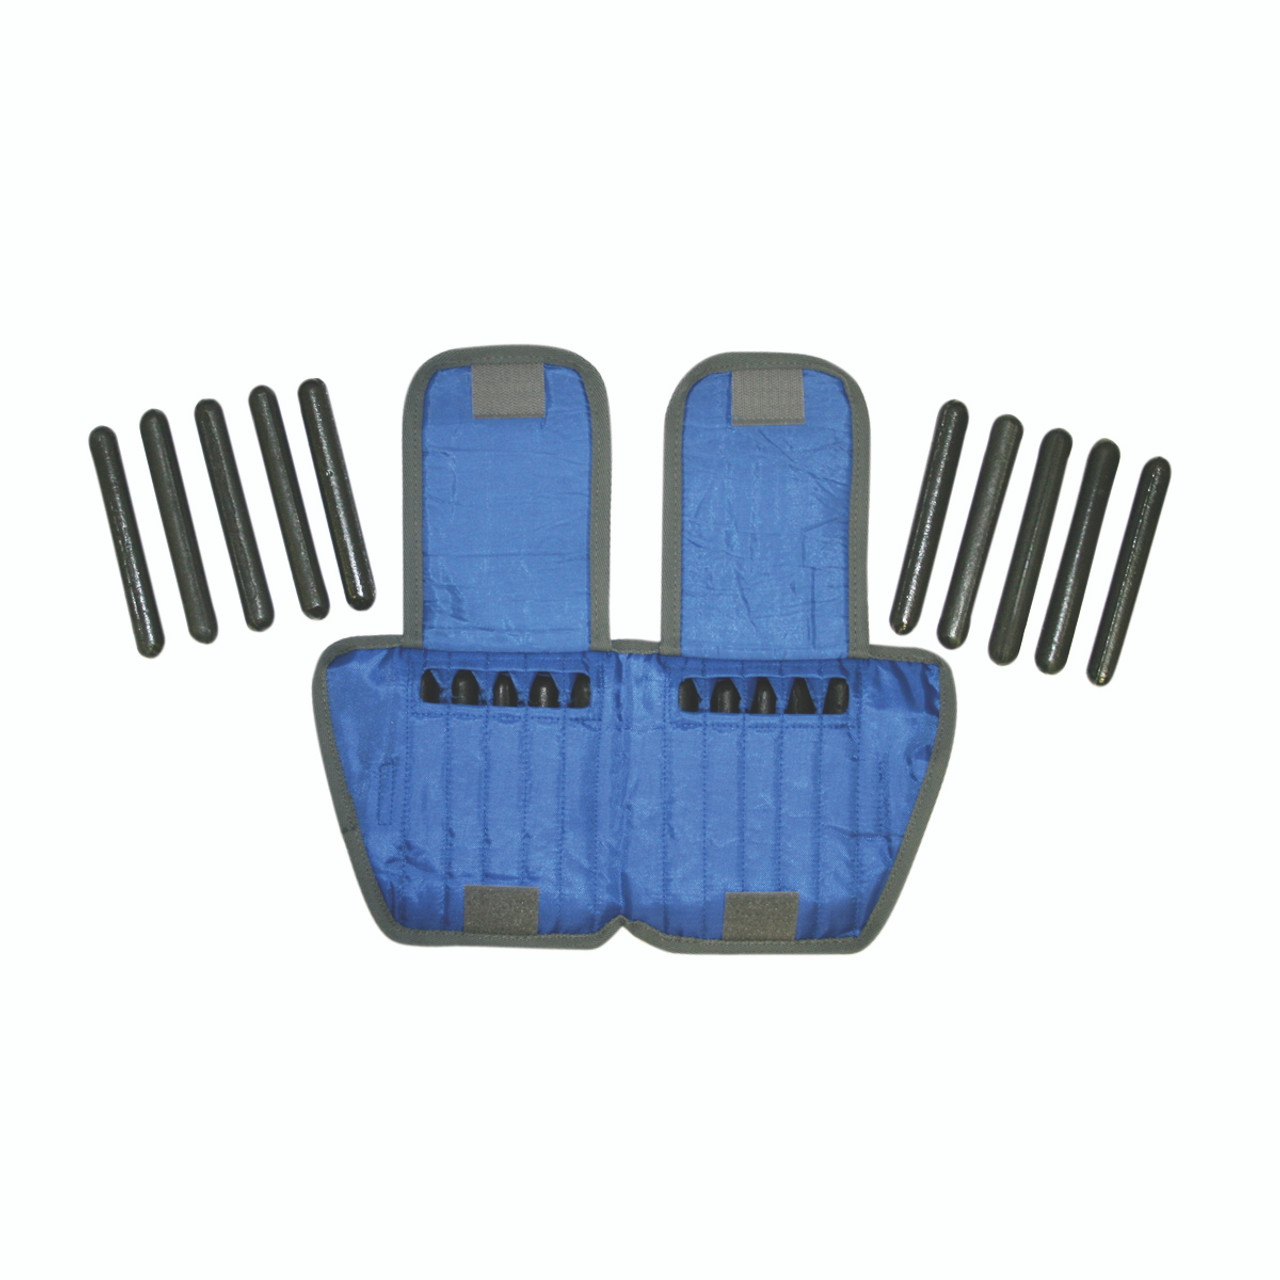 The Adjustable Cuff¨ ankle weight - 10 lb - 20 x 0.5 lb inserts - Blue - each